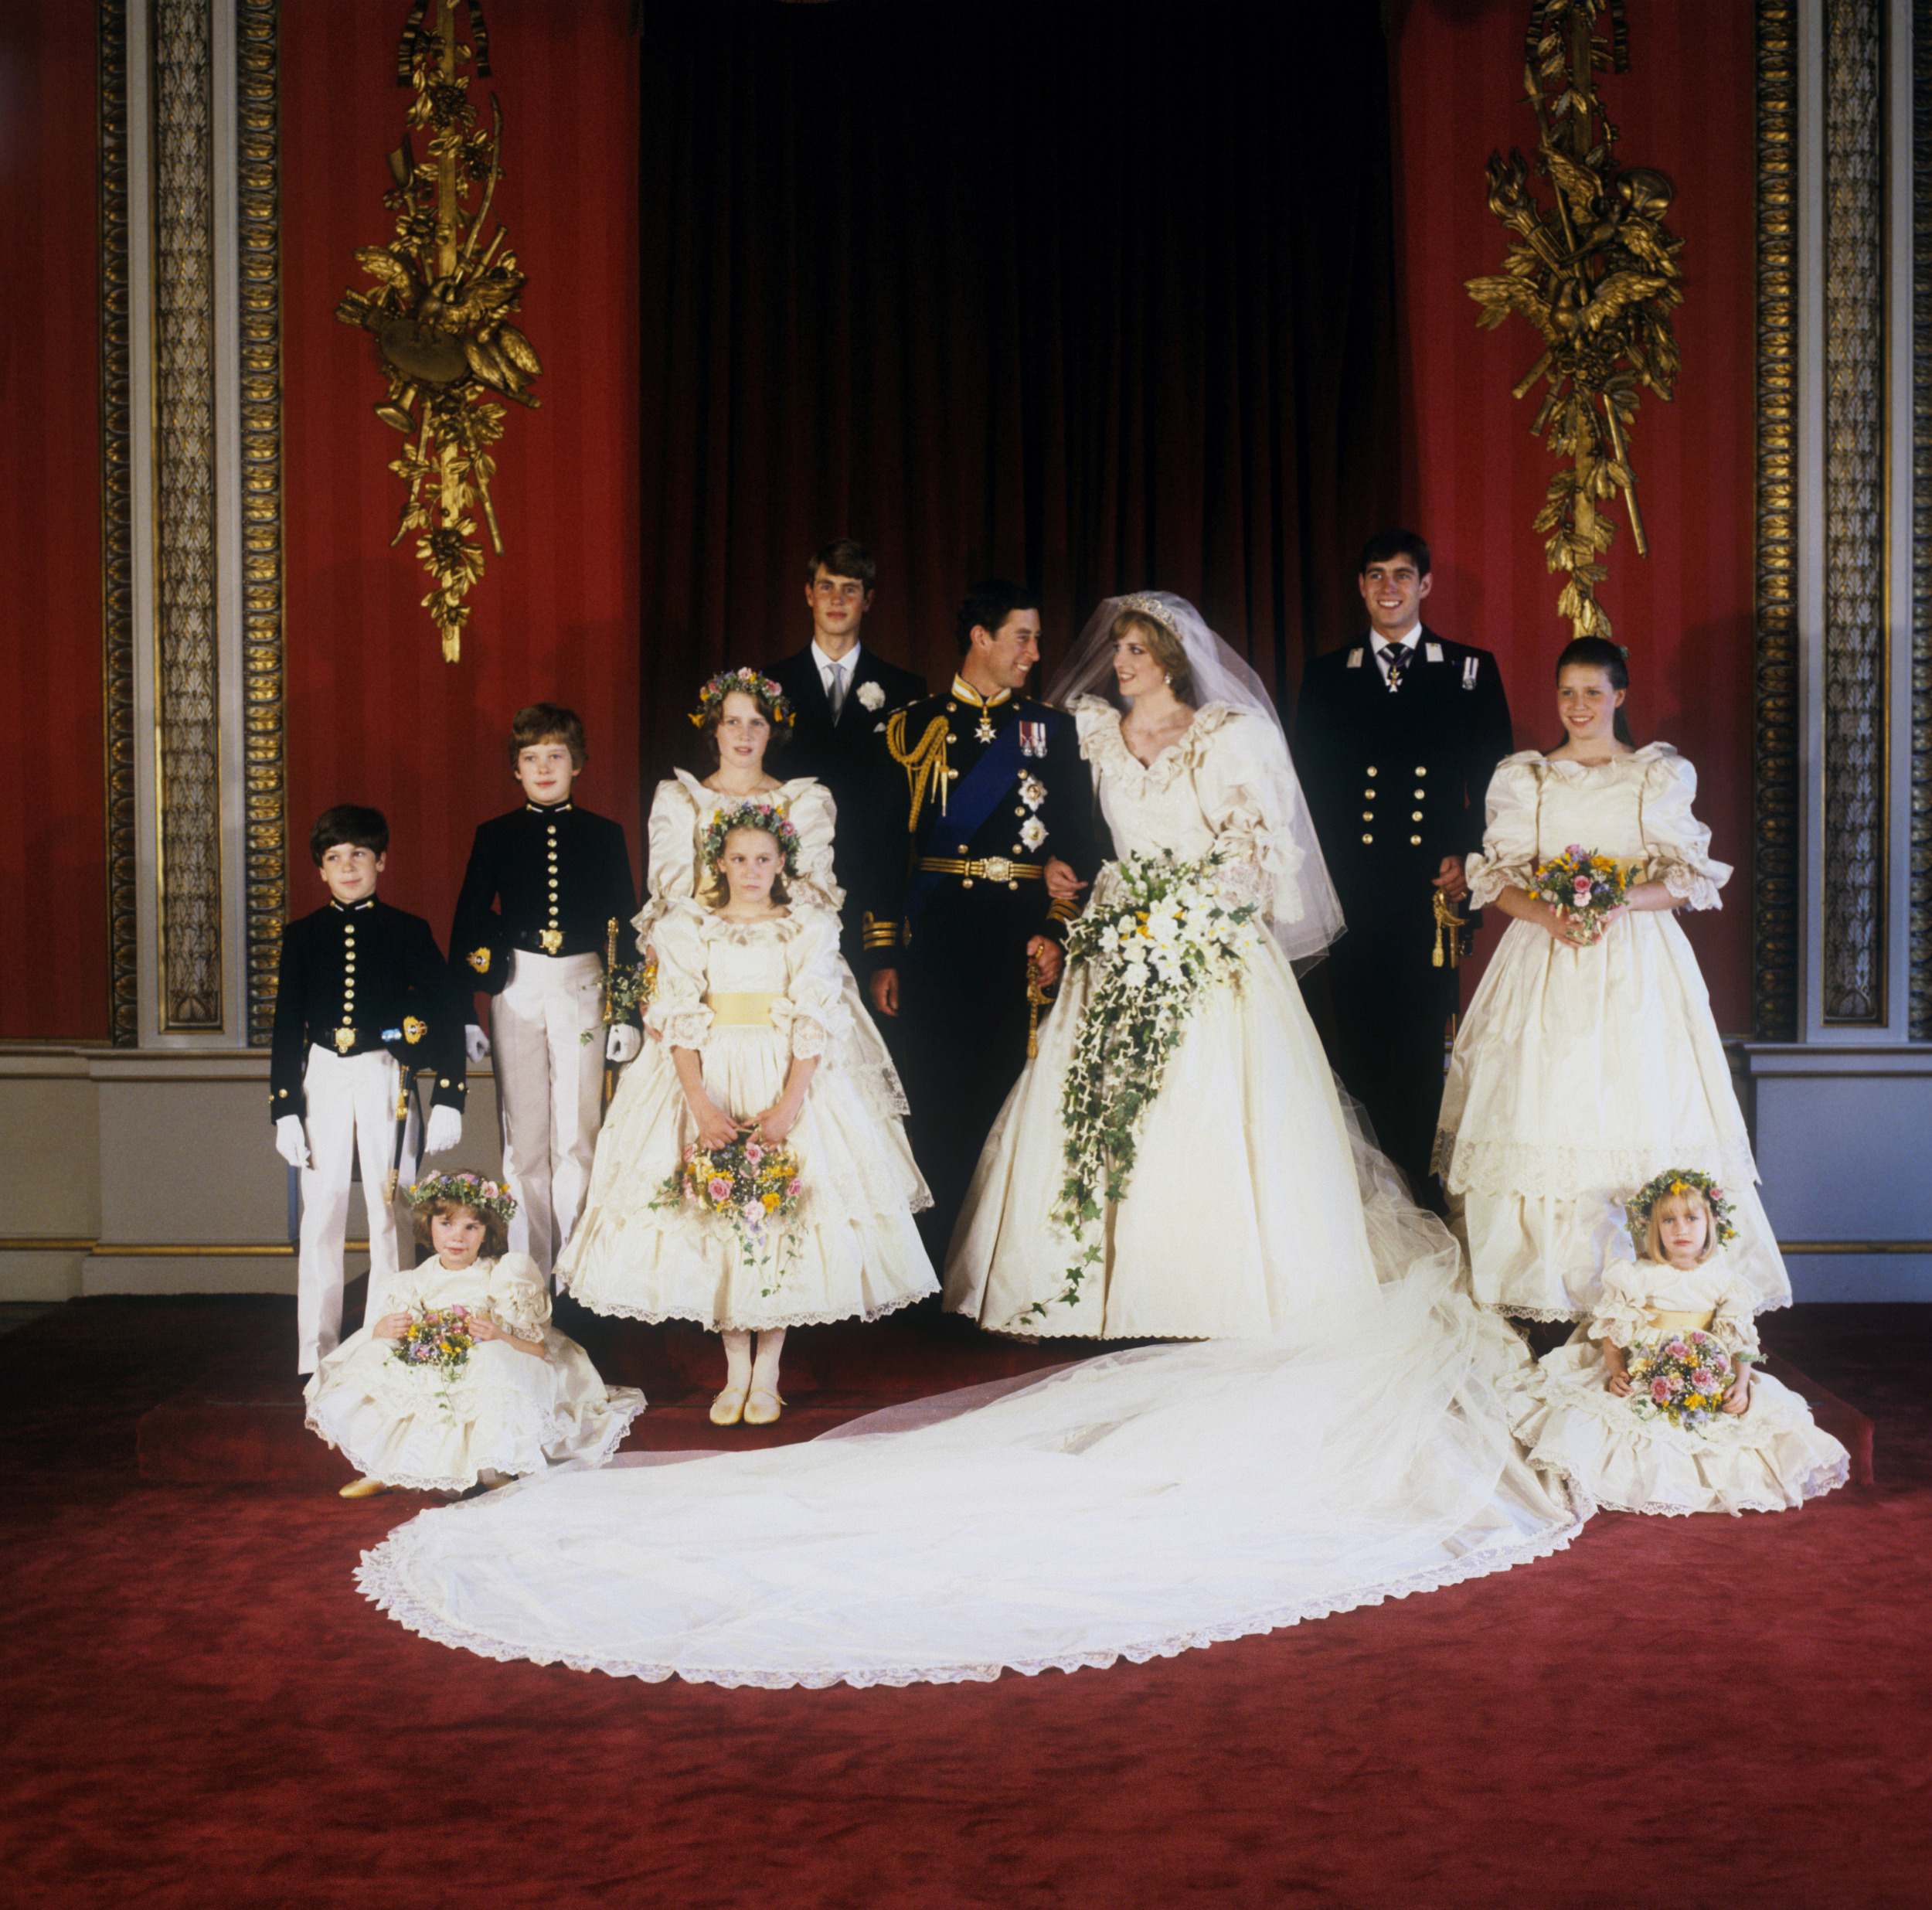 Modest Wedding Gowns Worn By Royal Families During Their